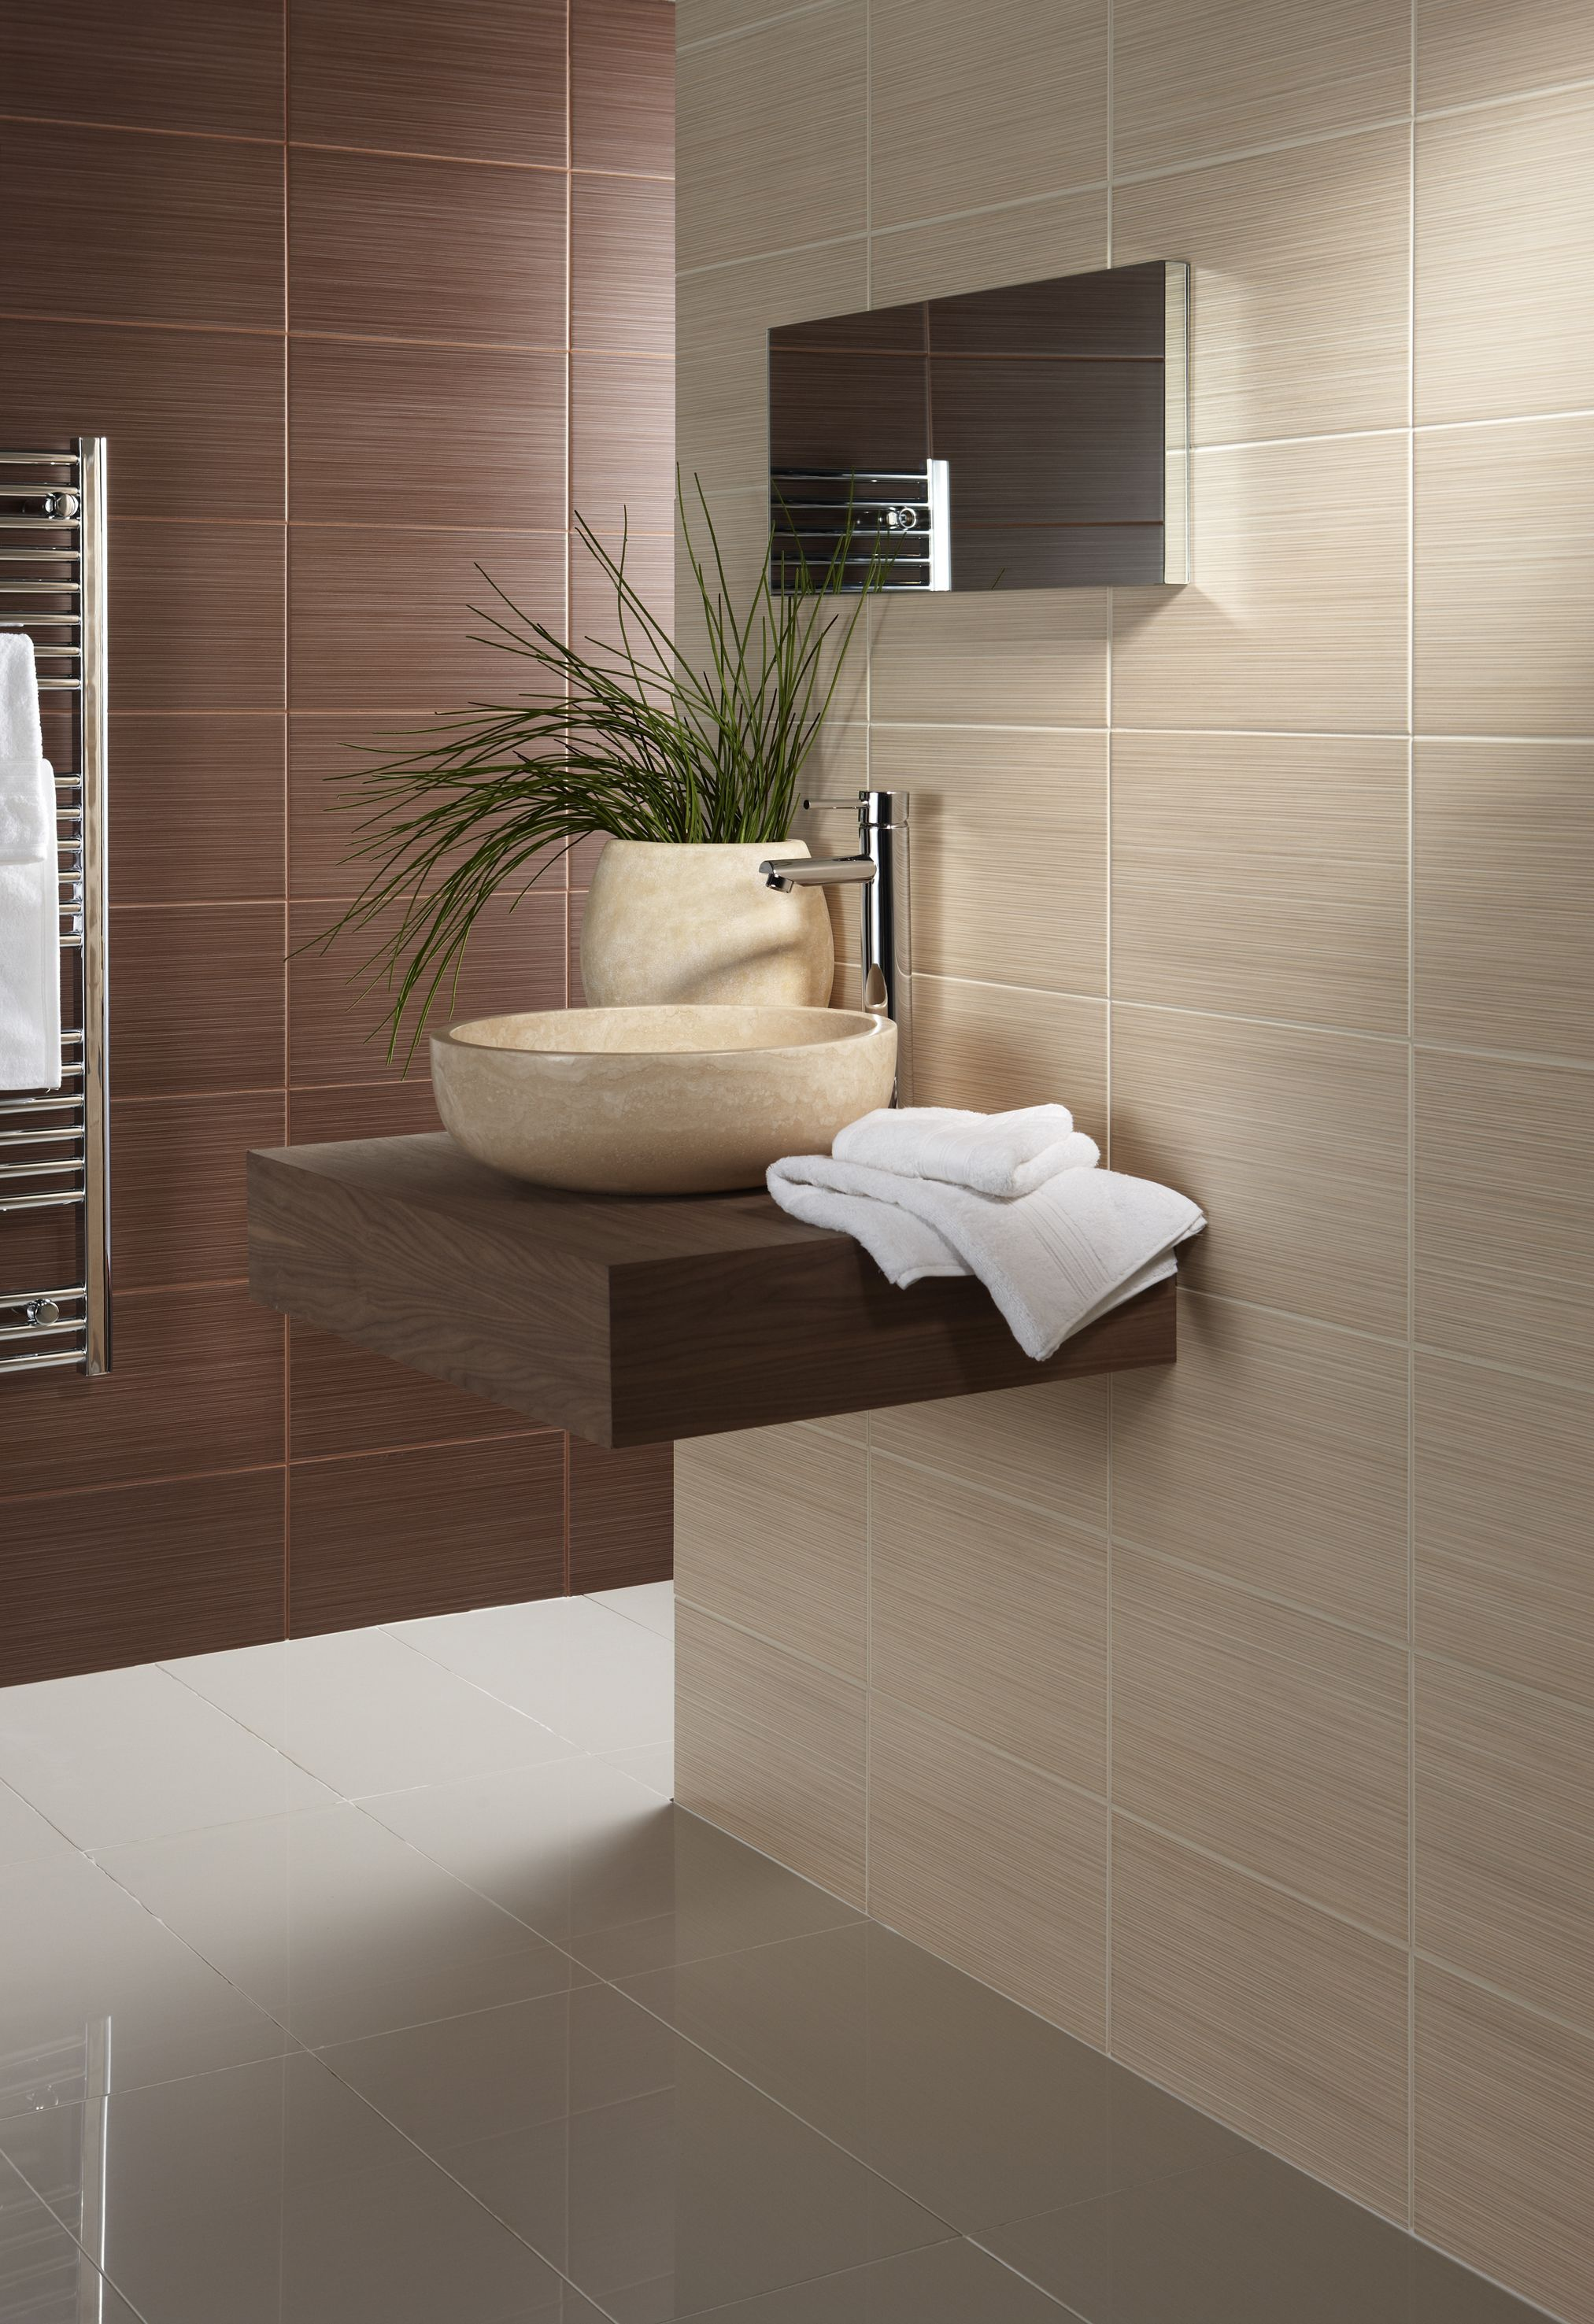 Willow Satin Wall Tiles By British Ceramic Tiles Uk Available In White Light Grey Dark Grey Neutral And Brown Bathroom Beige Tile Bathroom Beige Bathroom